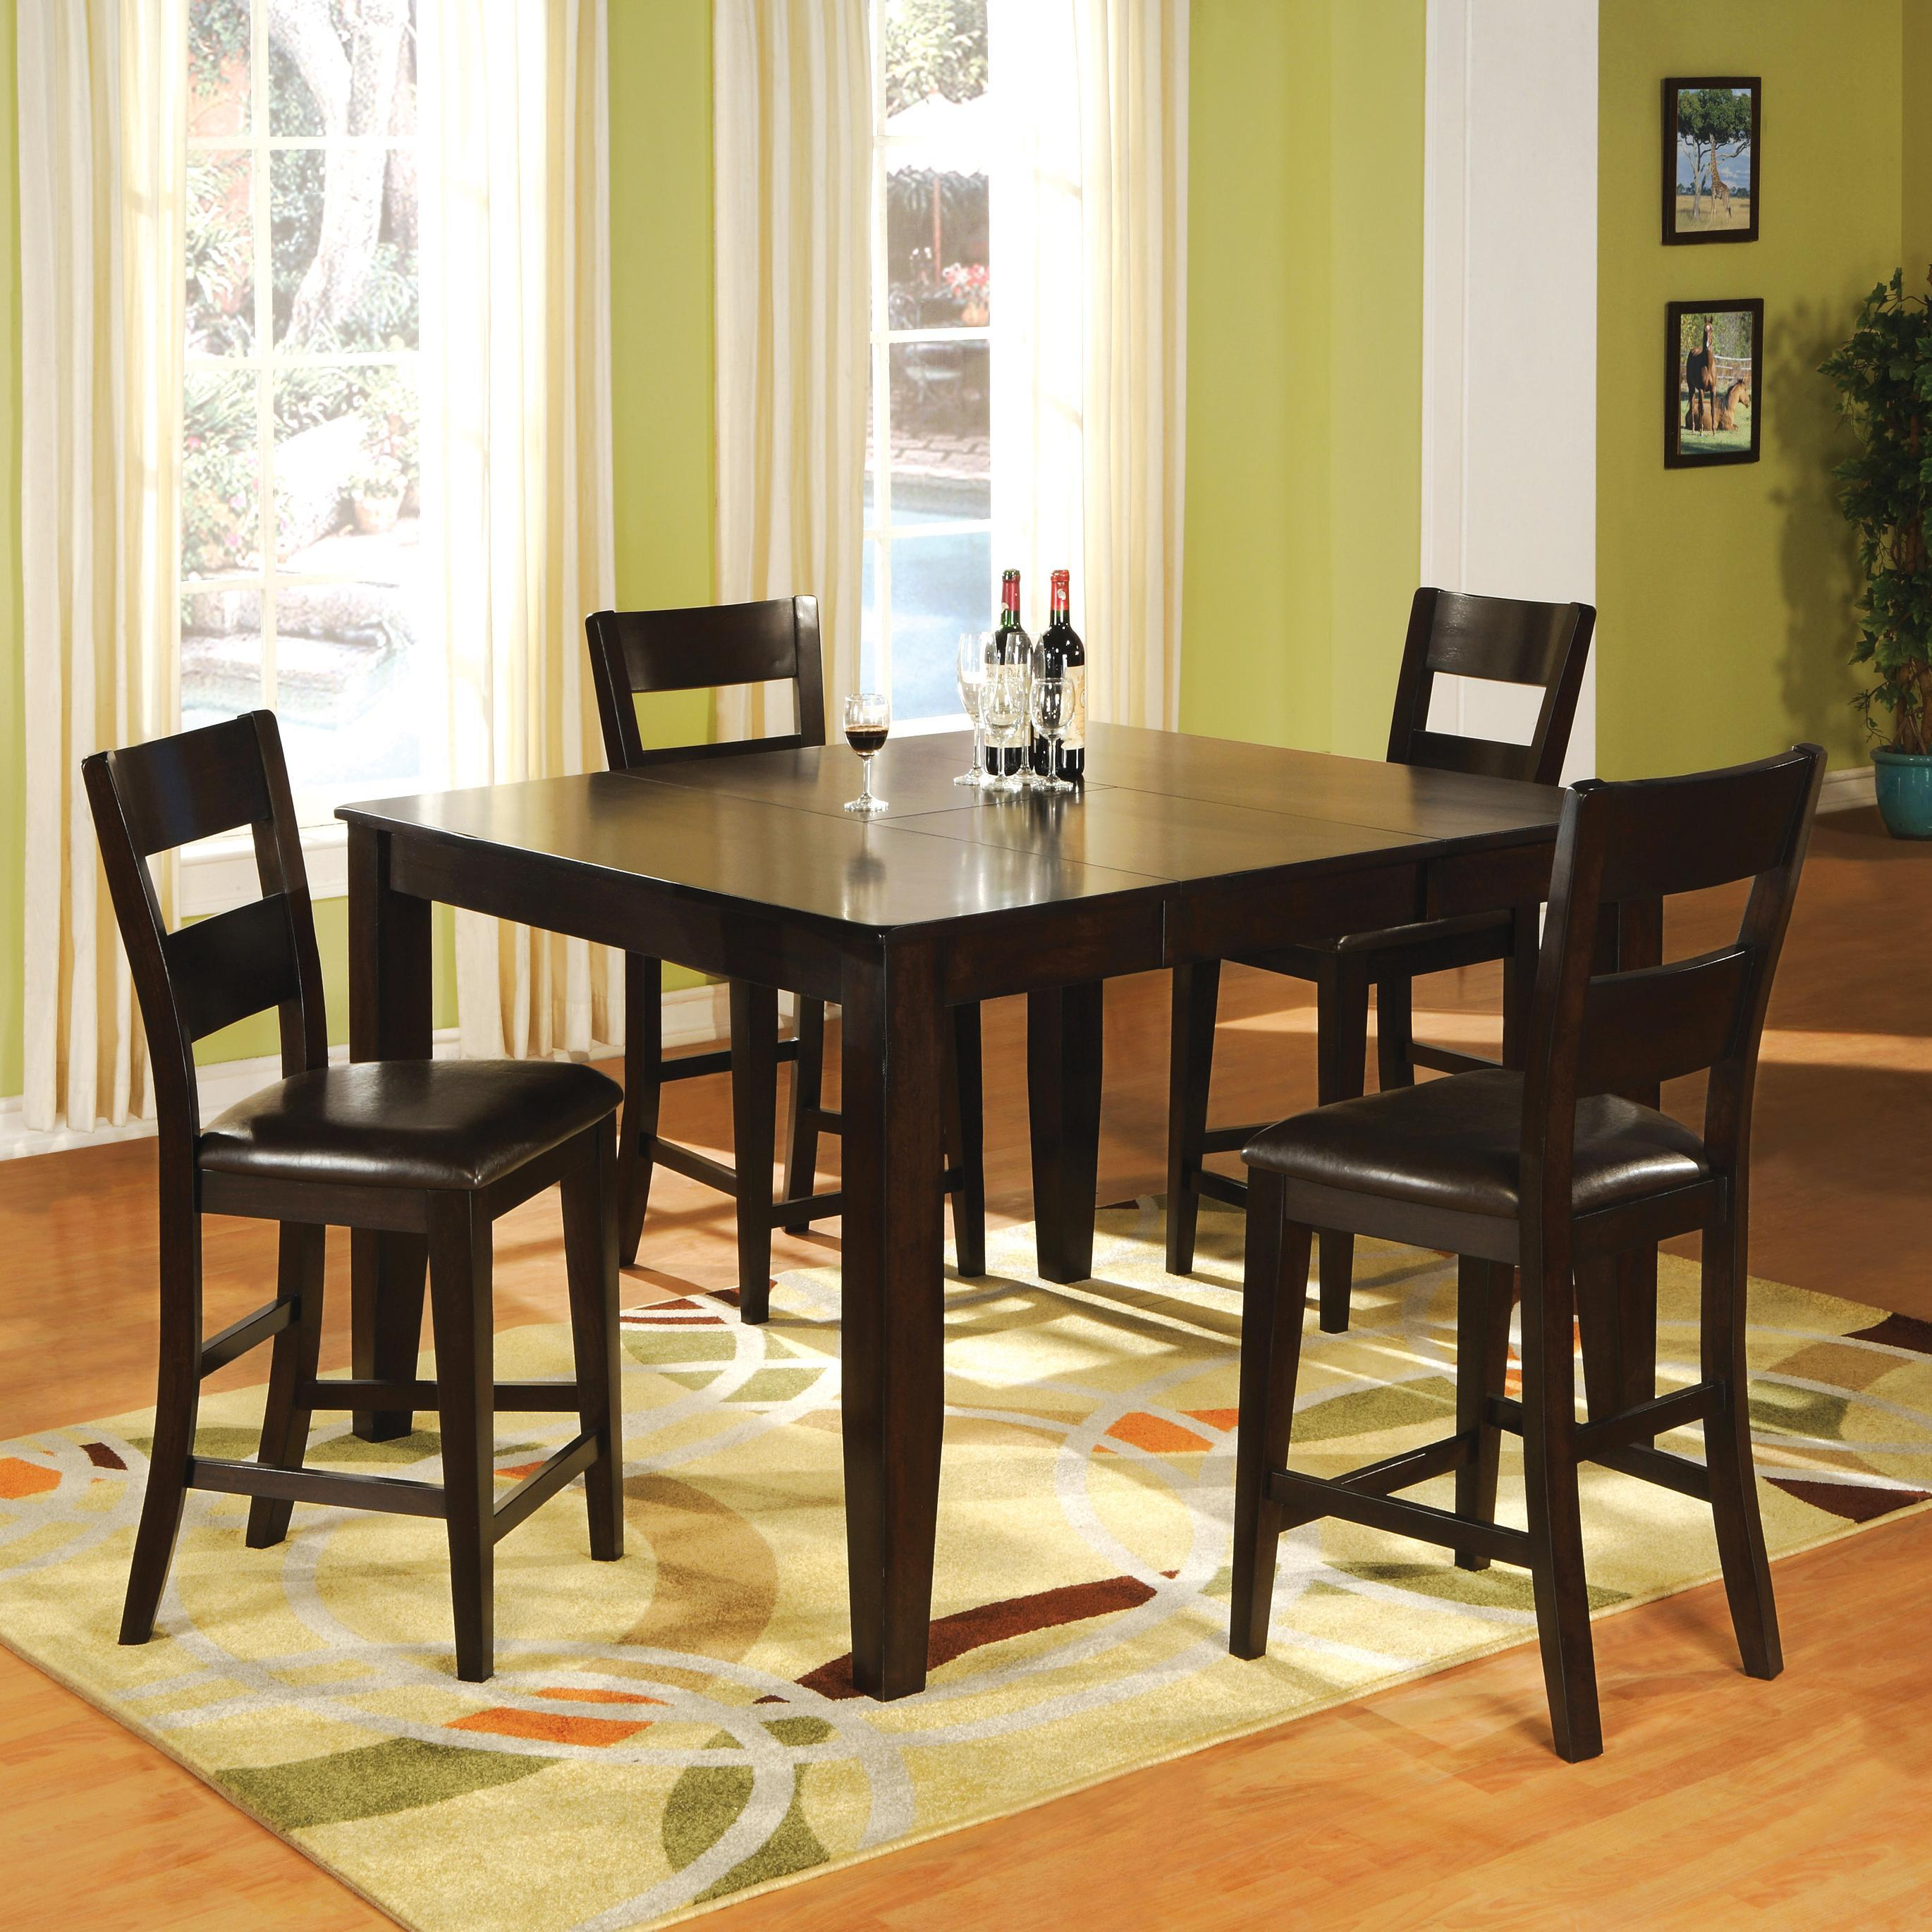 Melbourne 5 piece dining set morris home dining 5 piece sets Morris home furniture hours